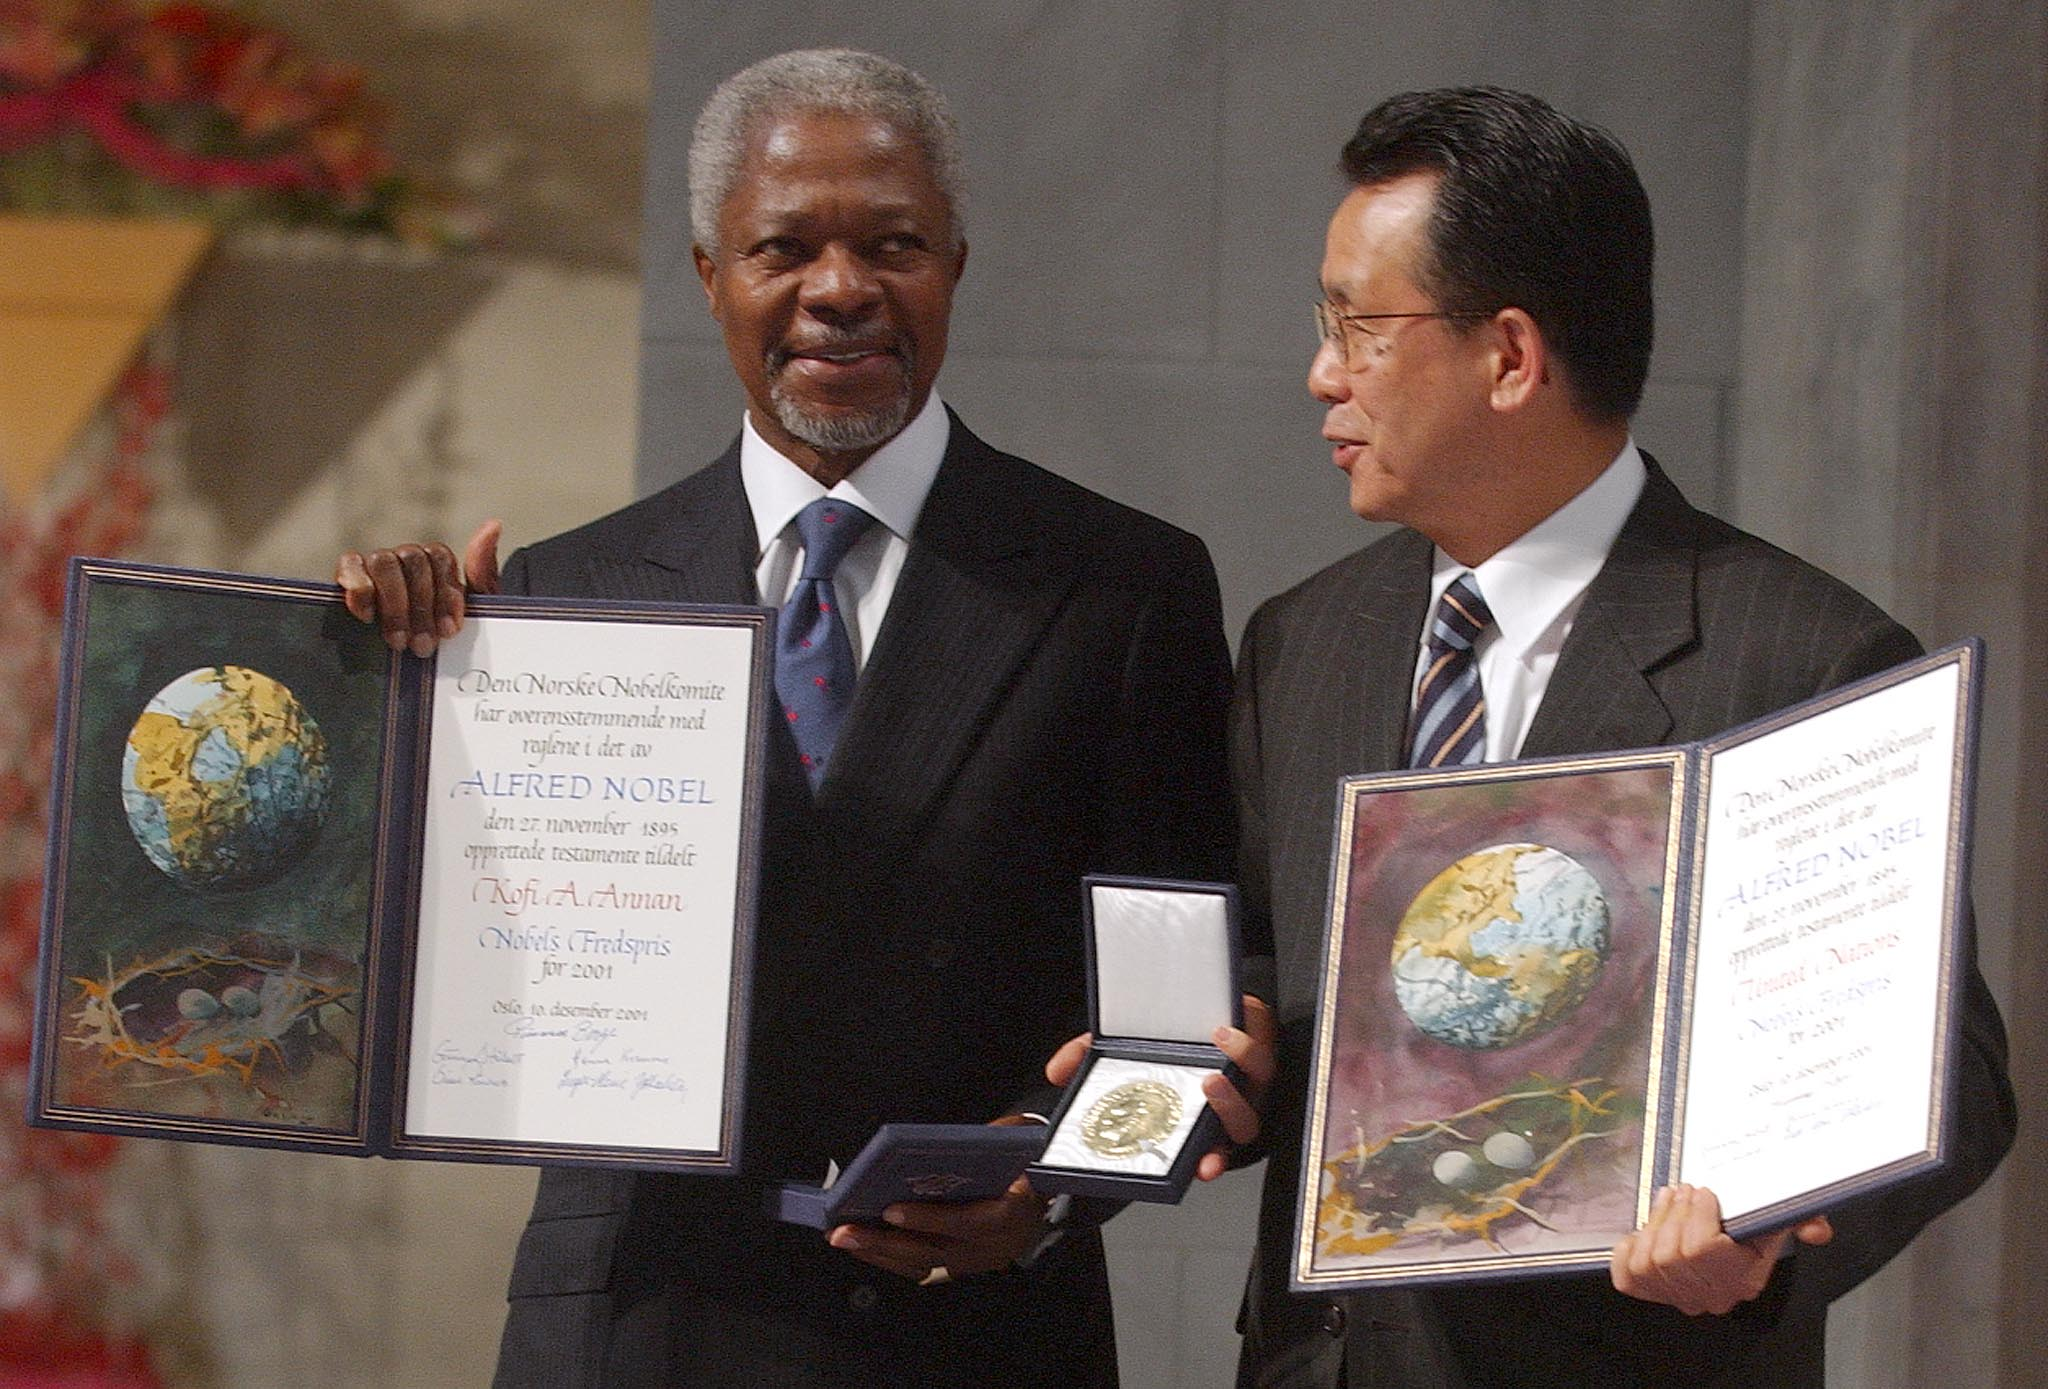 United Nations Secretary General Kofi Annan (L) and Korean Foreign Minister and President of the General Assembly Han Seung Soo show their medals and certificate during the 2001 Nobel Peace Prize in Oslo December 10, 2001. Annan received the centenary Nobel Peace Prize alongside the United Nations.